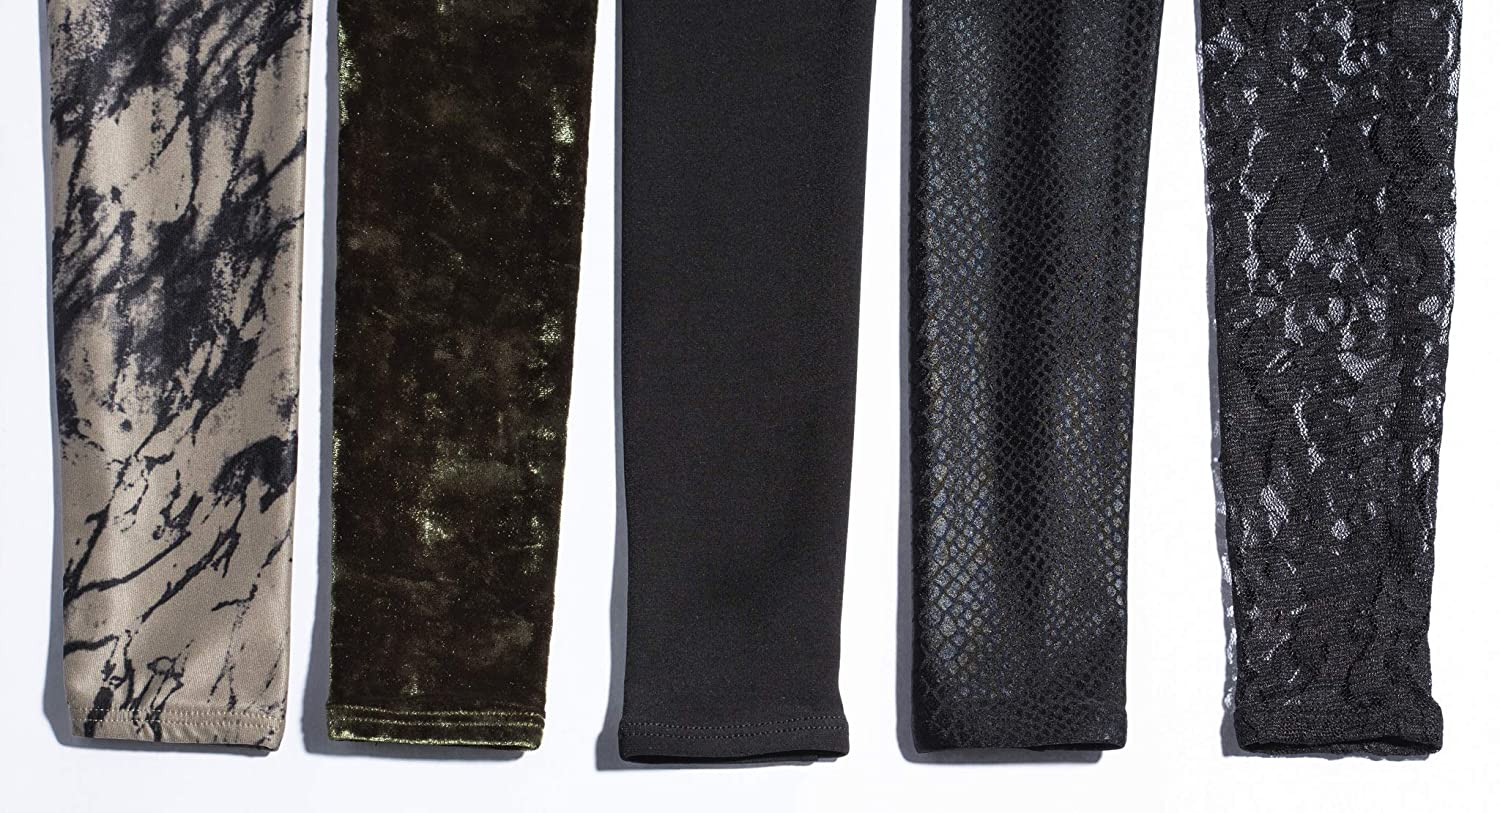 Covers Forearm Alta-8 Womens Arm Sleeve w//Dust Cover Bag Tanks or as Warmth Layer Worn under Dresses Tops Lace